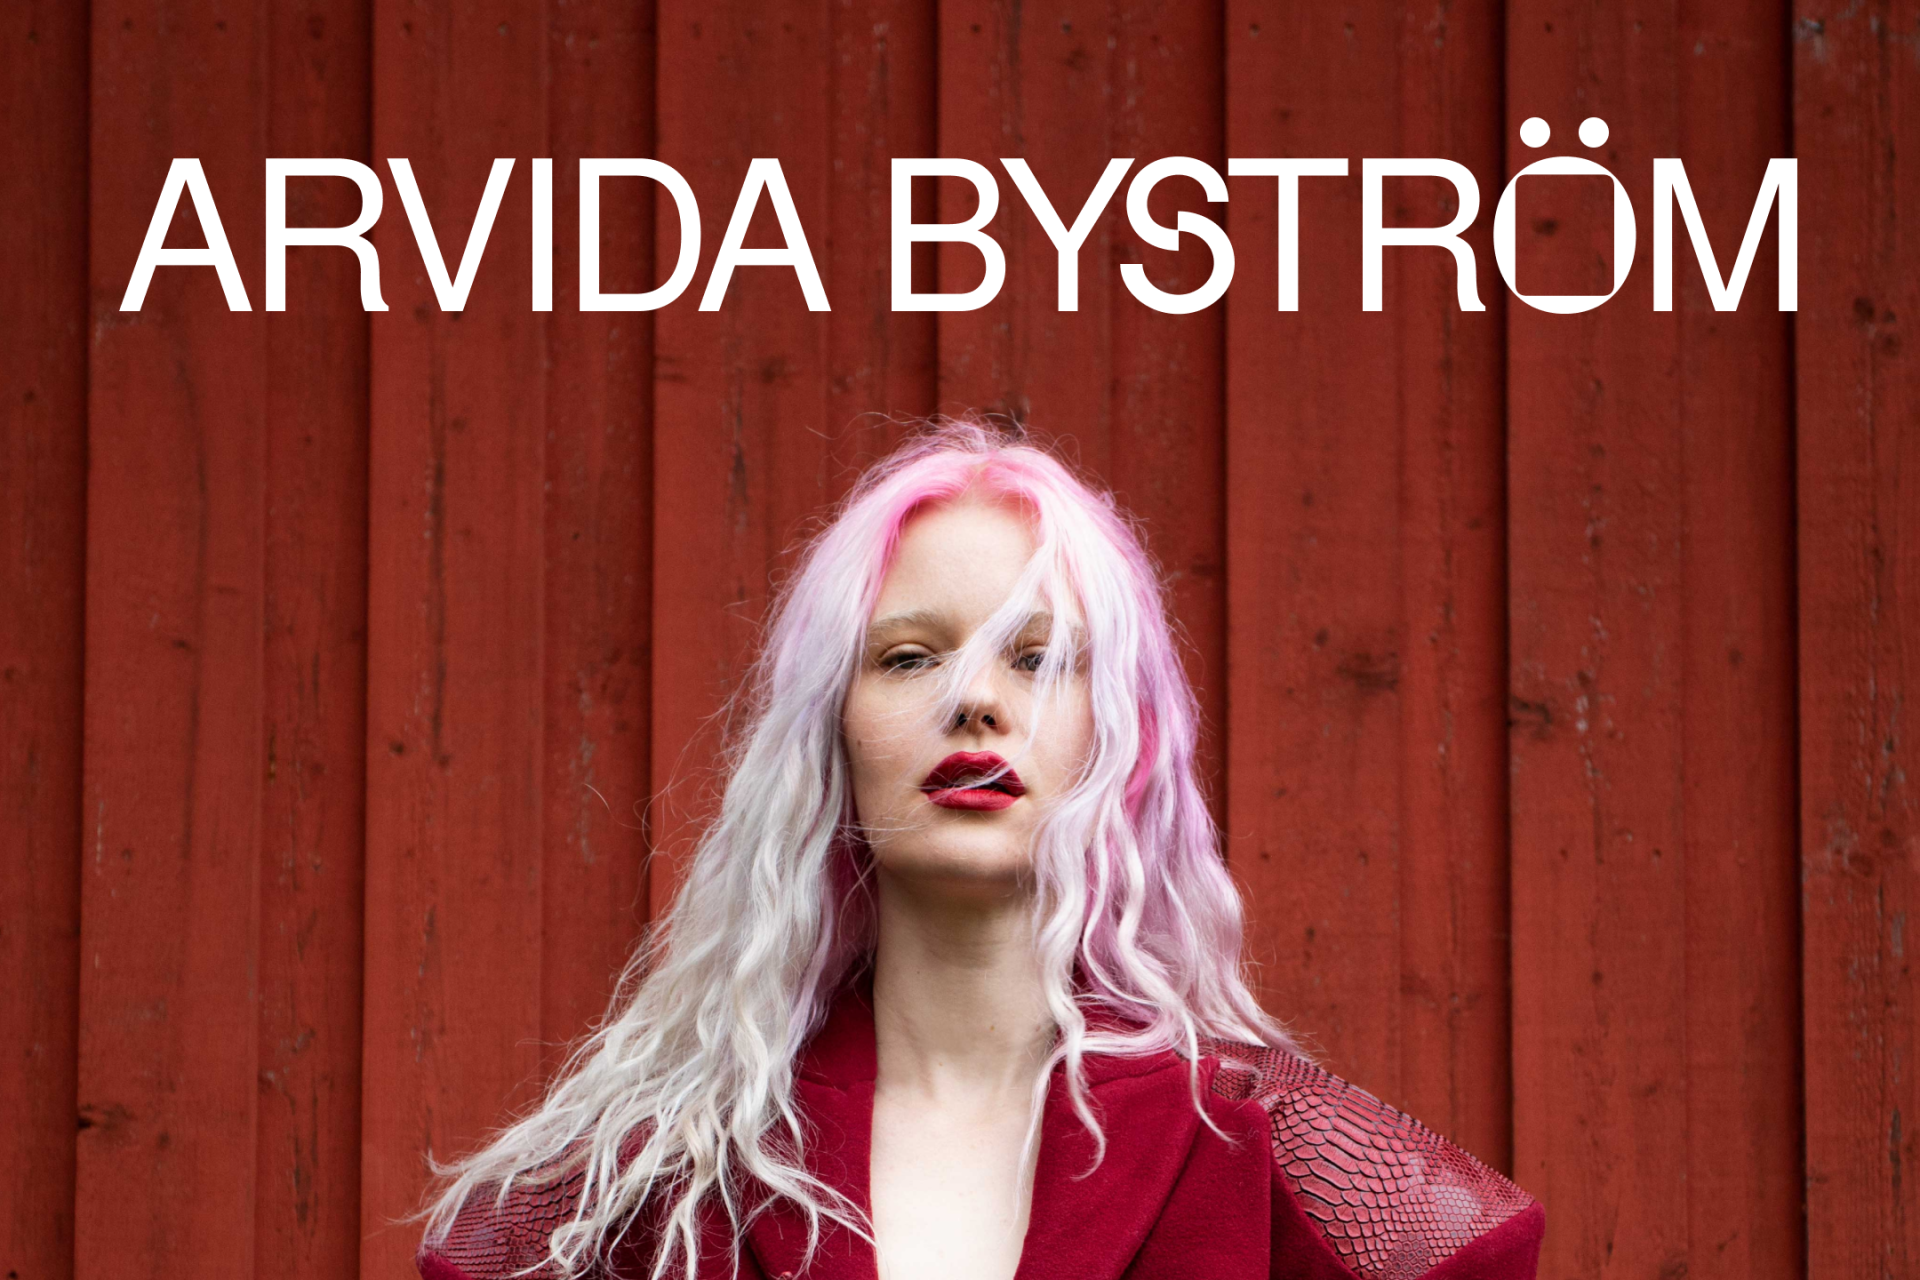 Arvida Byström on the myths we make to cope with reality.